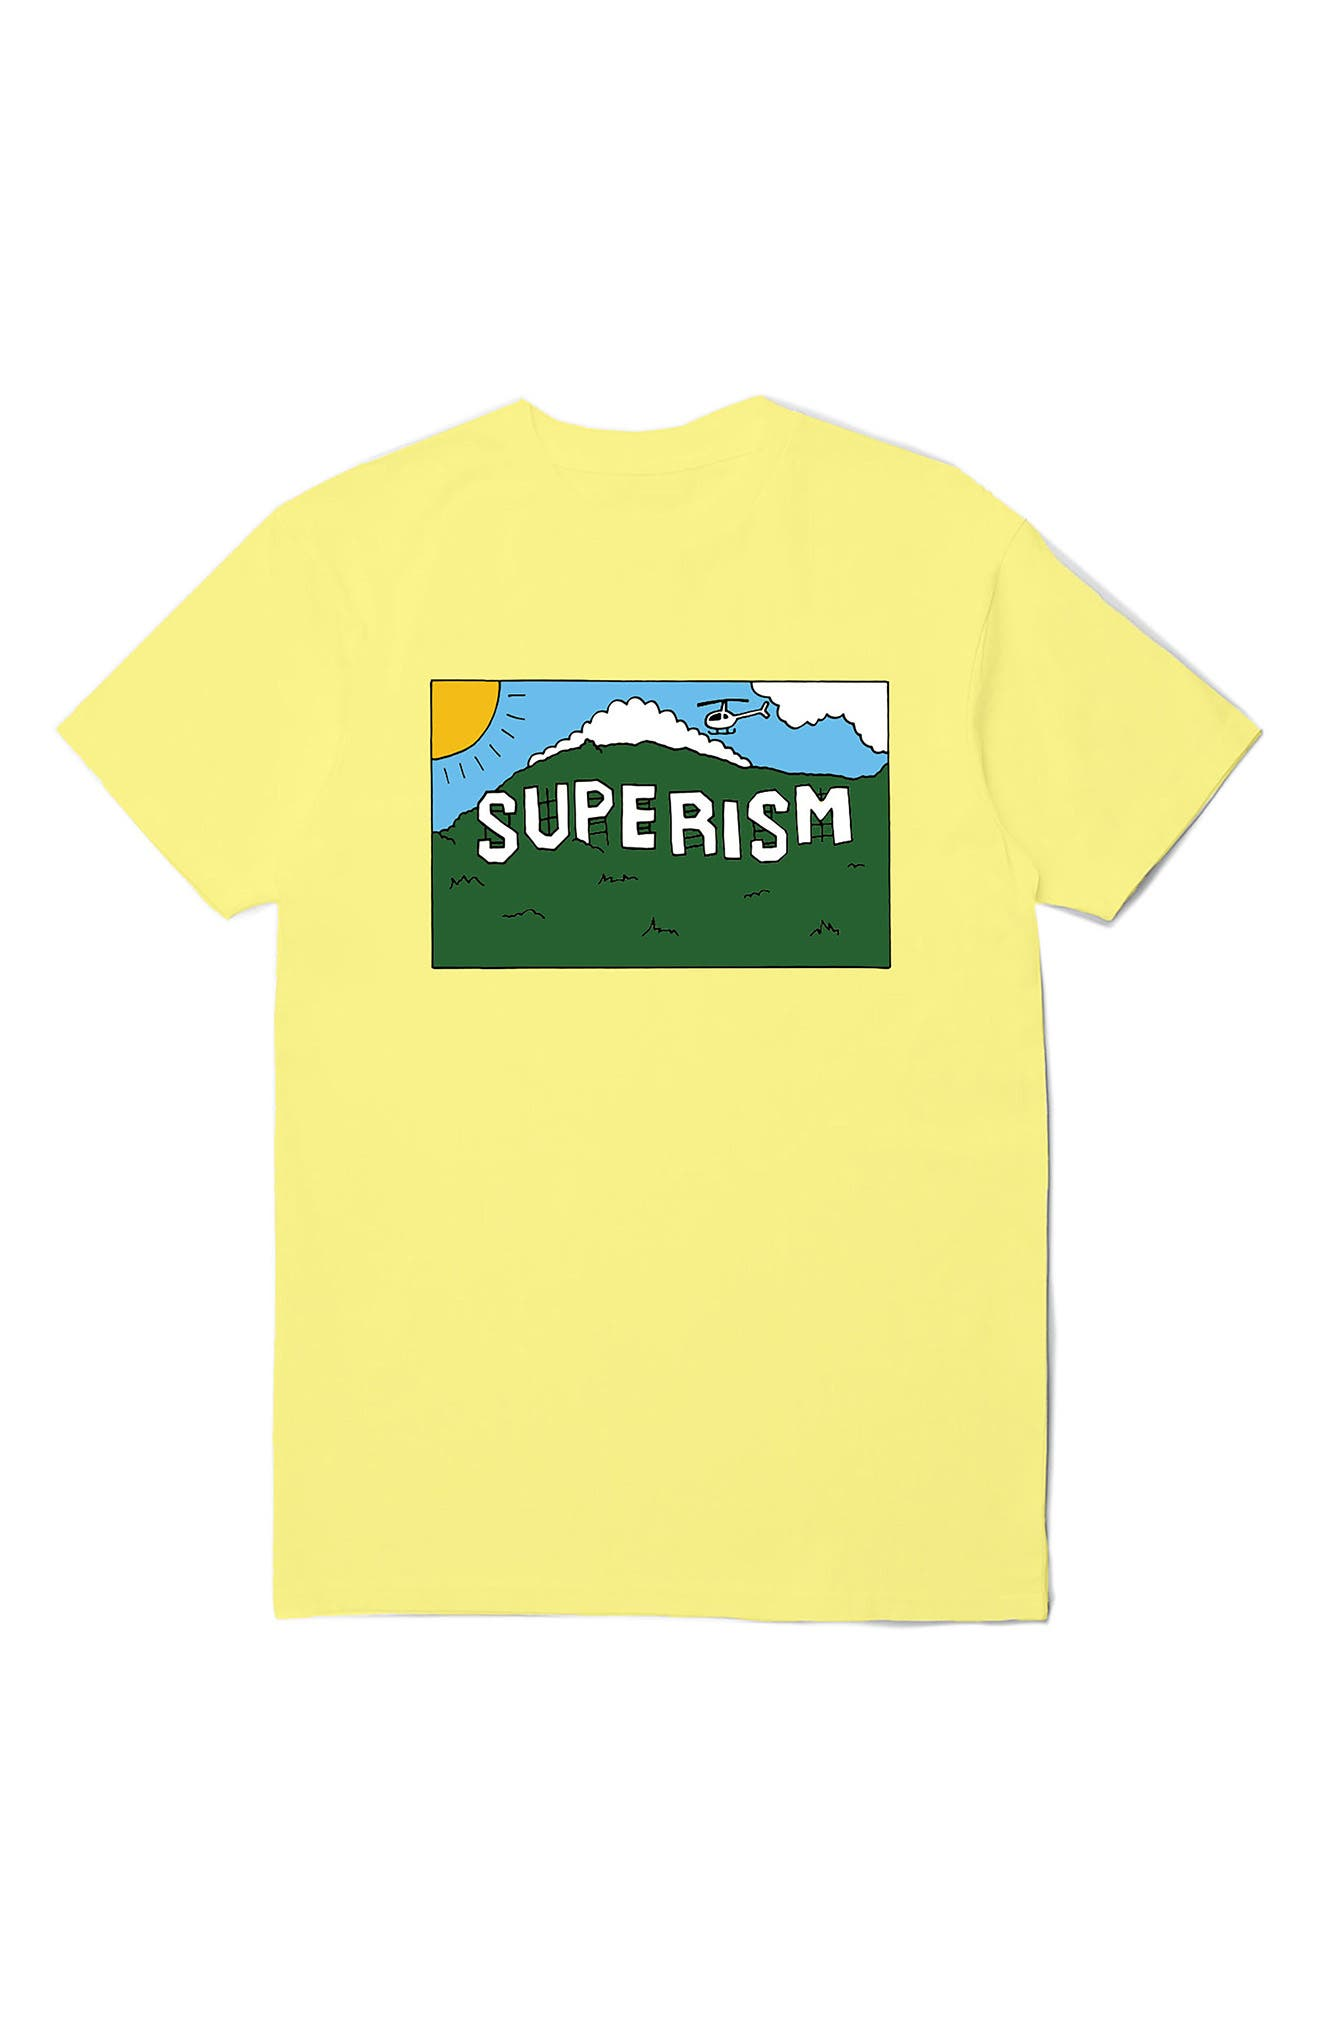 Mt Superism Graphic T-Shirt,                             Main thumbnail 1, color,